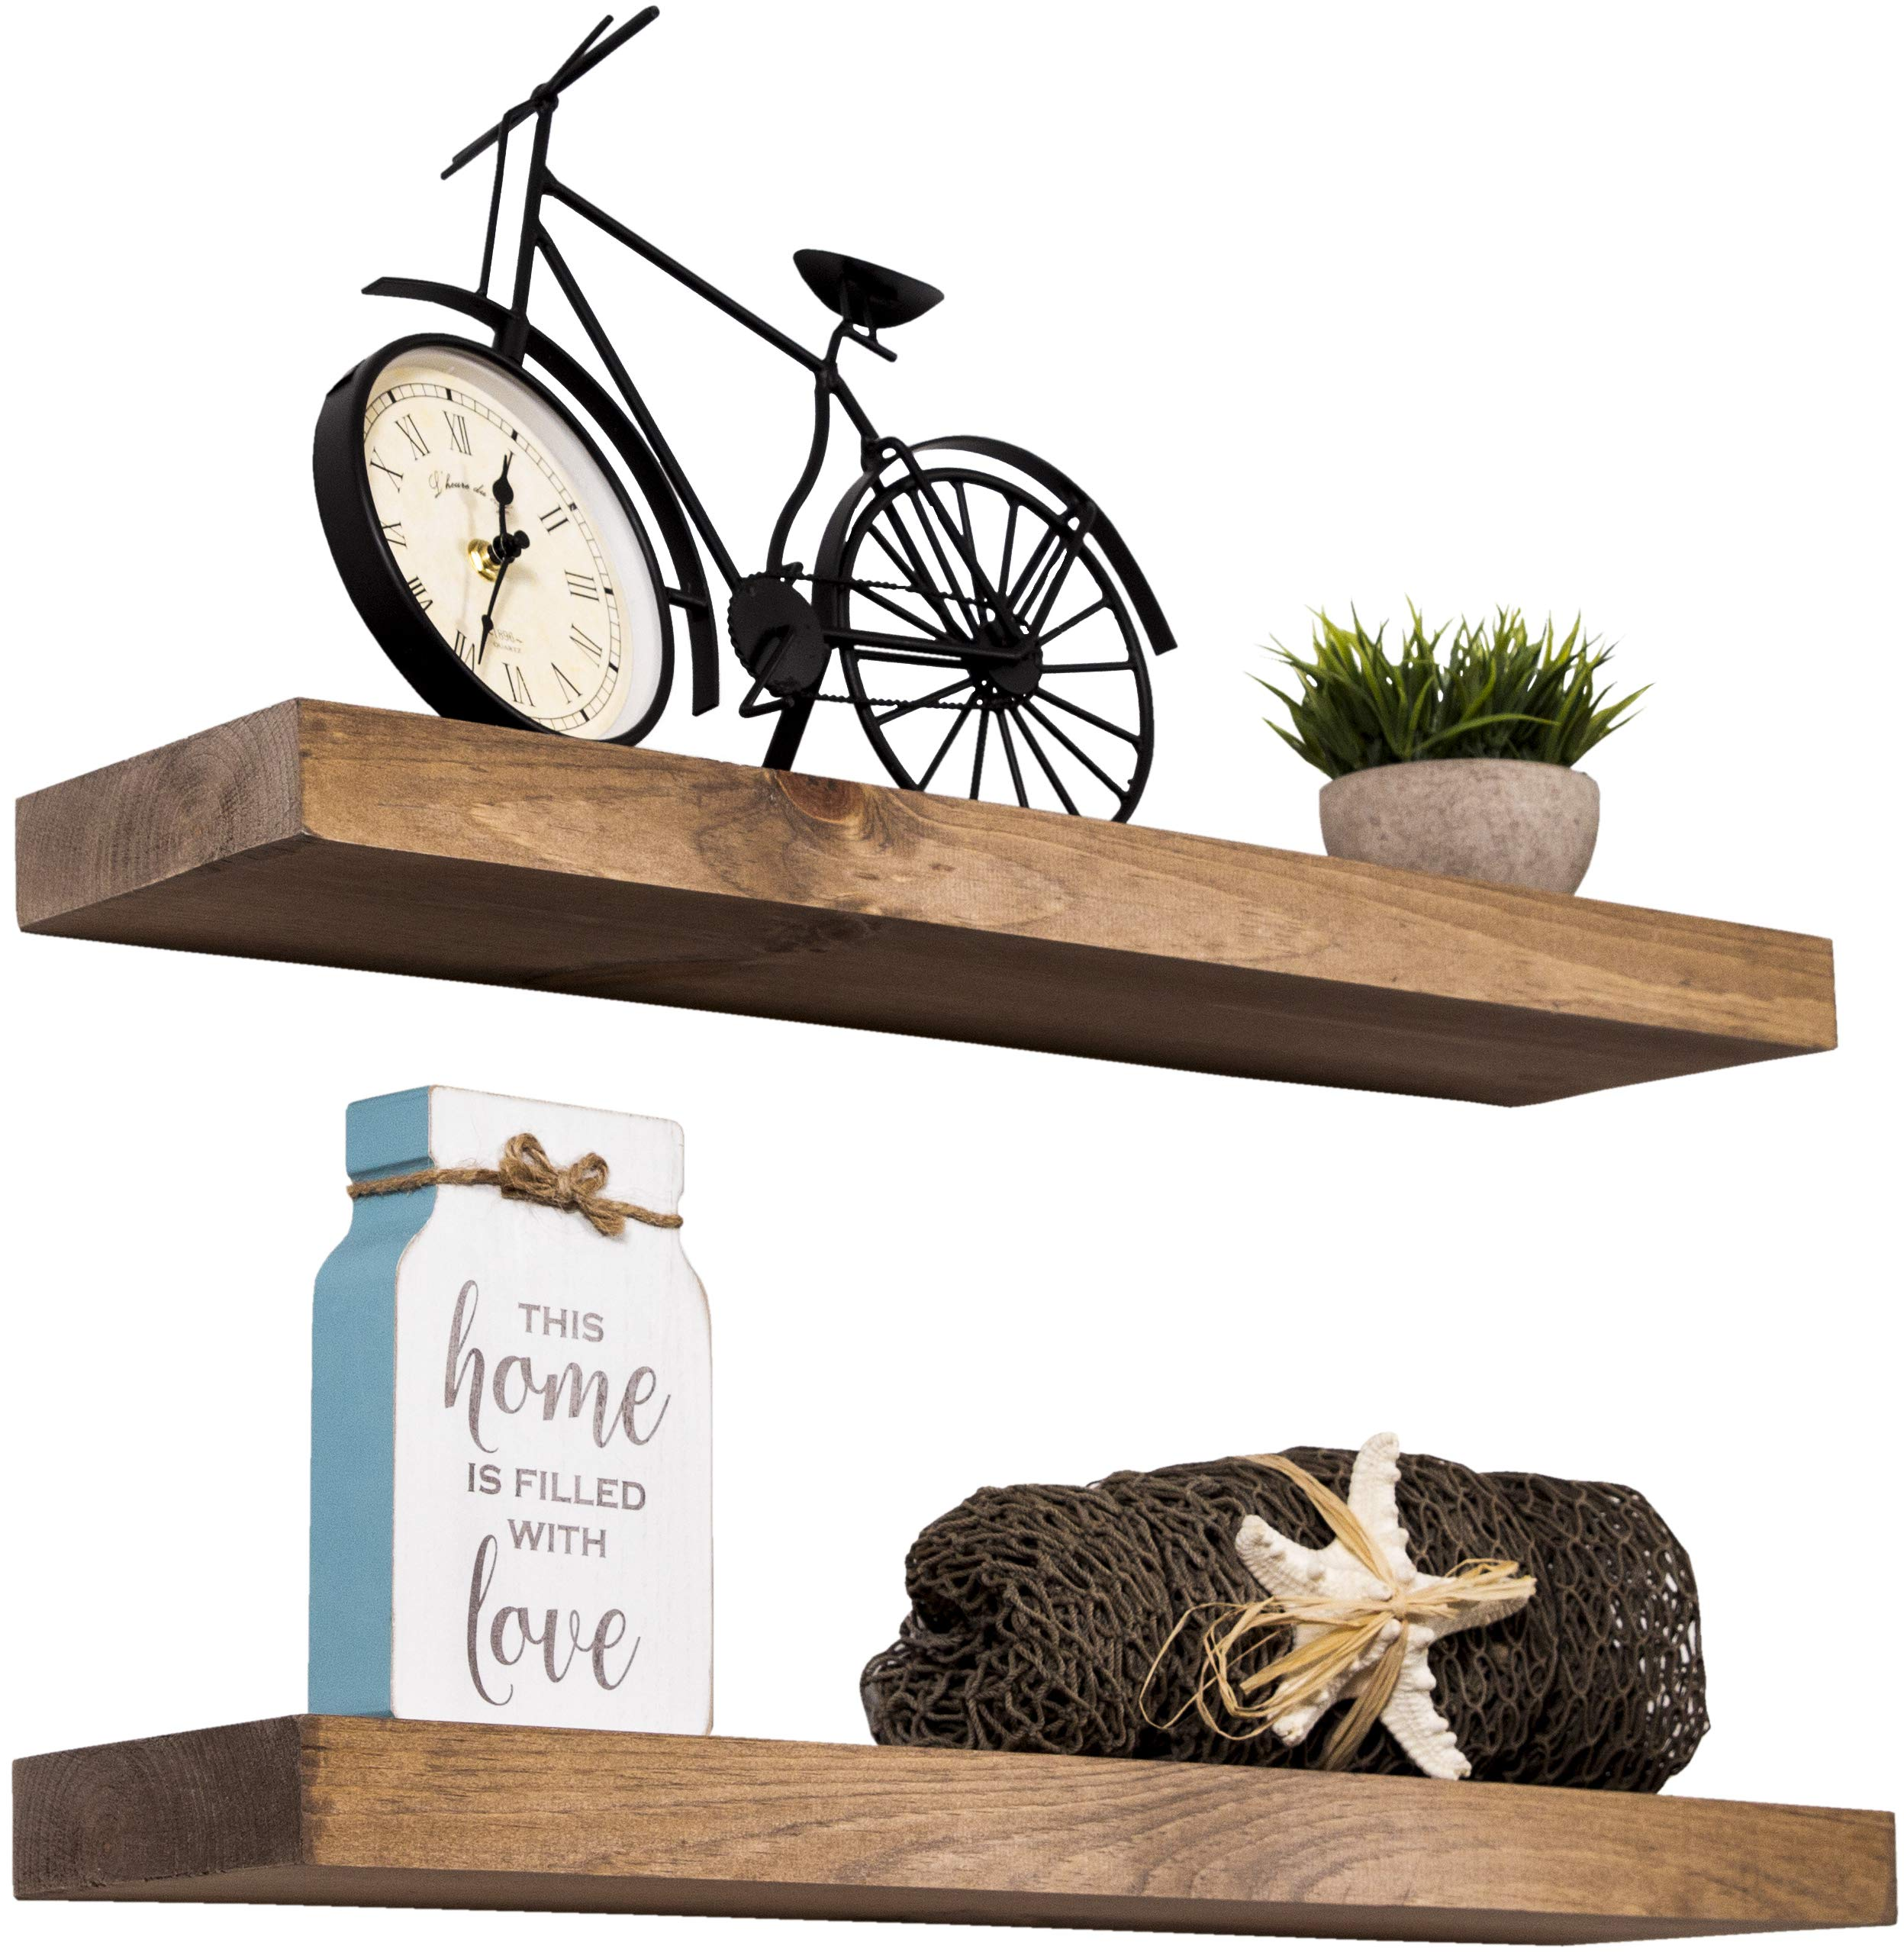 Imperative Décor Floating Shelves Rustic Wood Wall Shelf USA Handmade | Set of 2 (Special Walnut, 24'' x 5.5'') by Imperative Décor